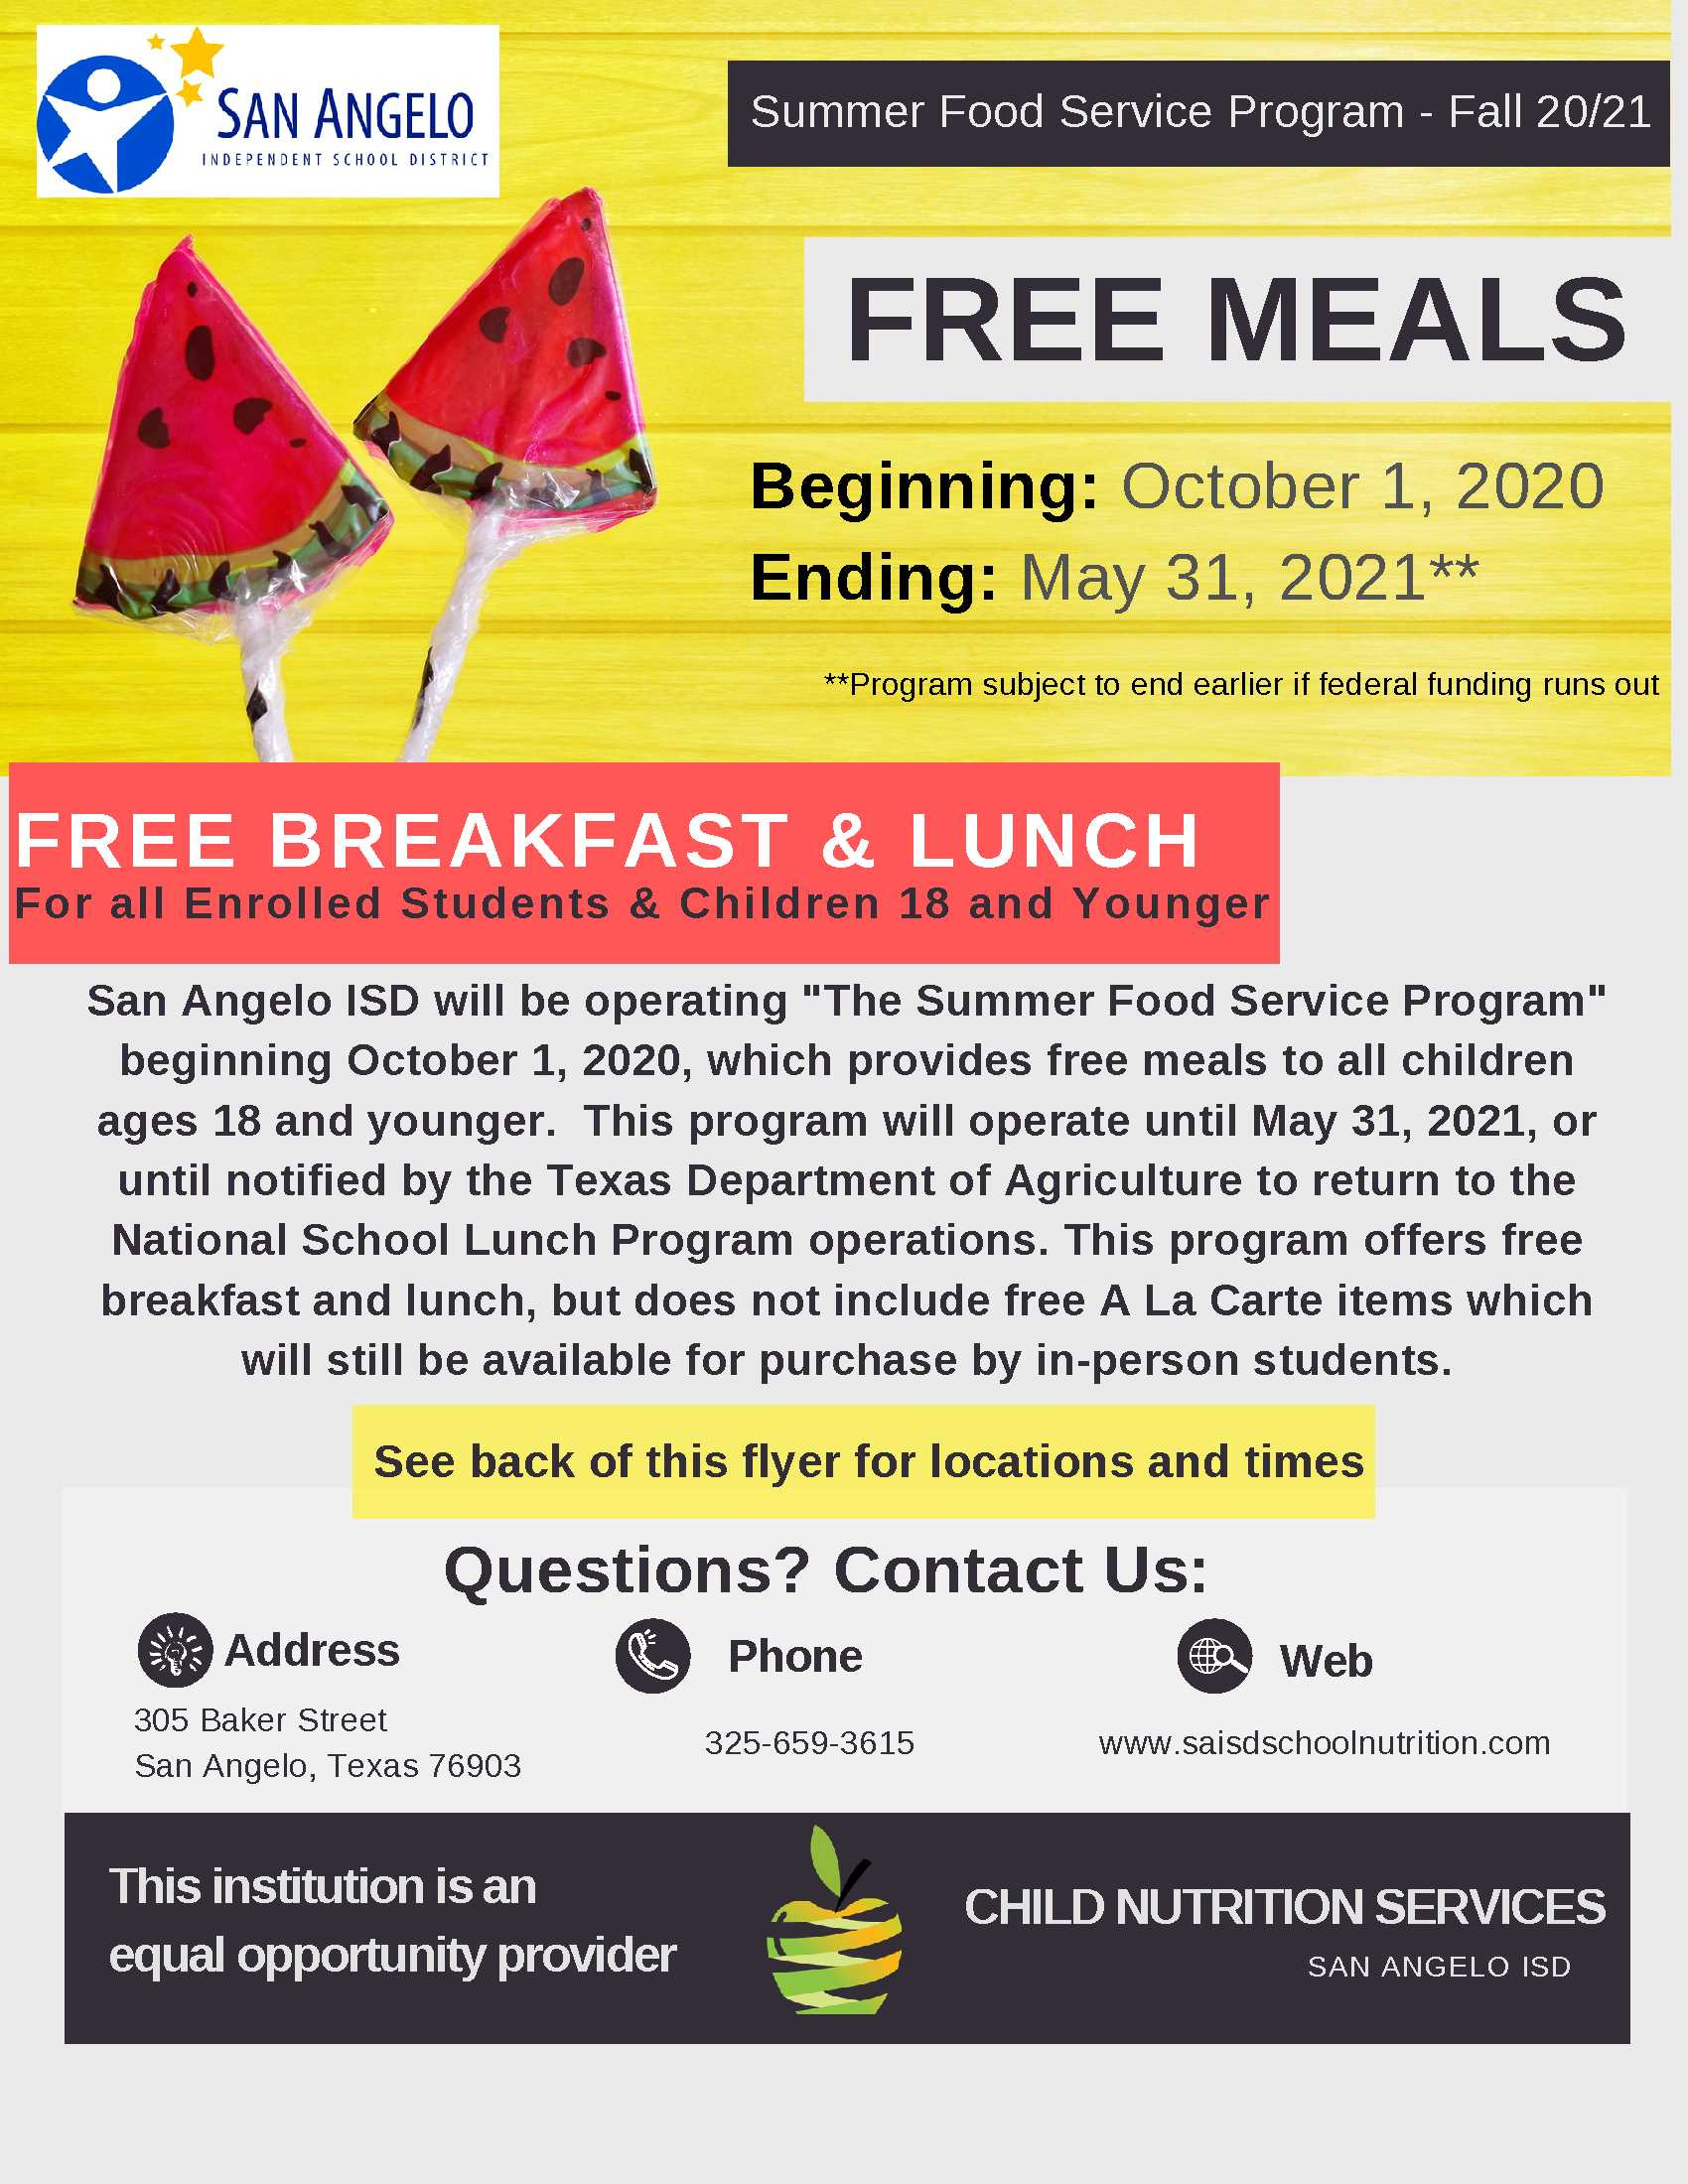 Summer_Feeding/6. UPDATED - COMBINED COPY SFSP Flyer - Program Through May 31_1.jpg